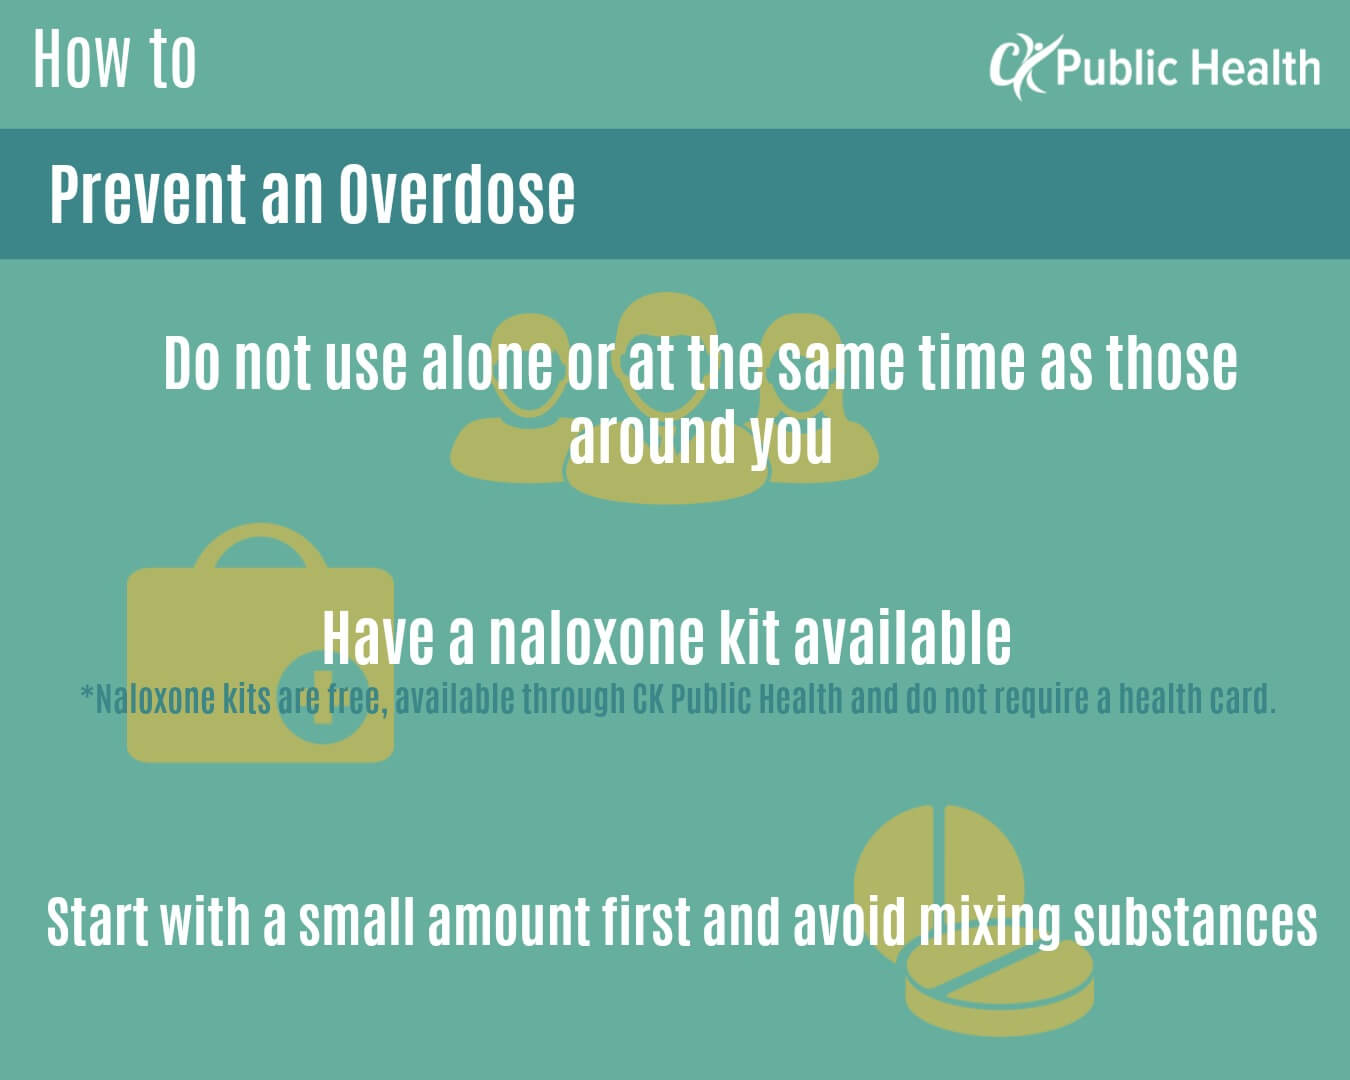 How to prevent an overdose